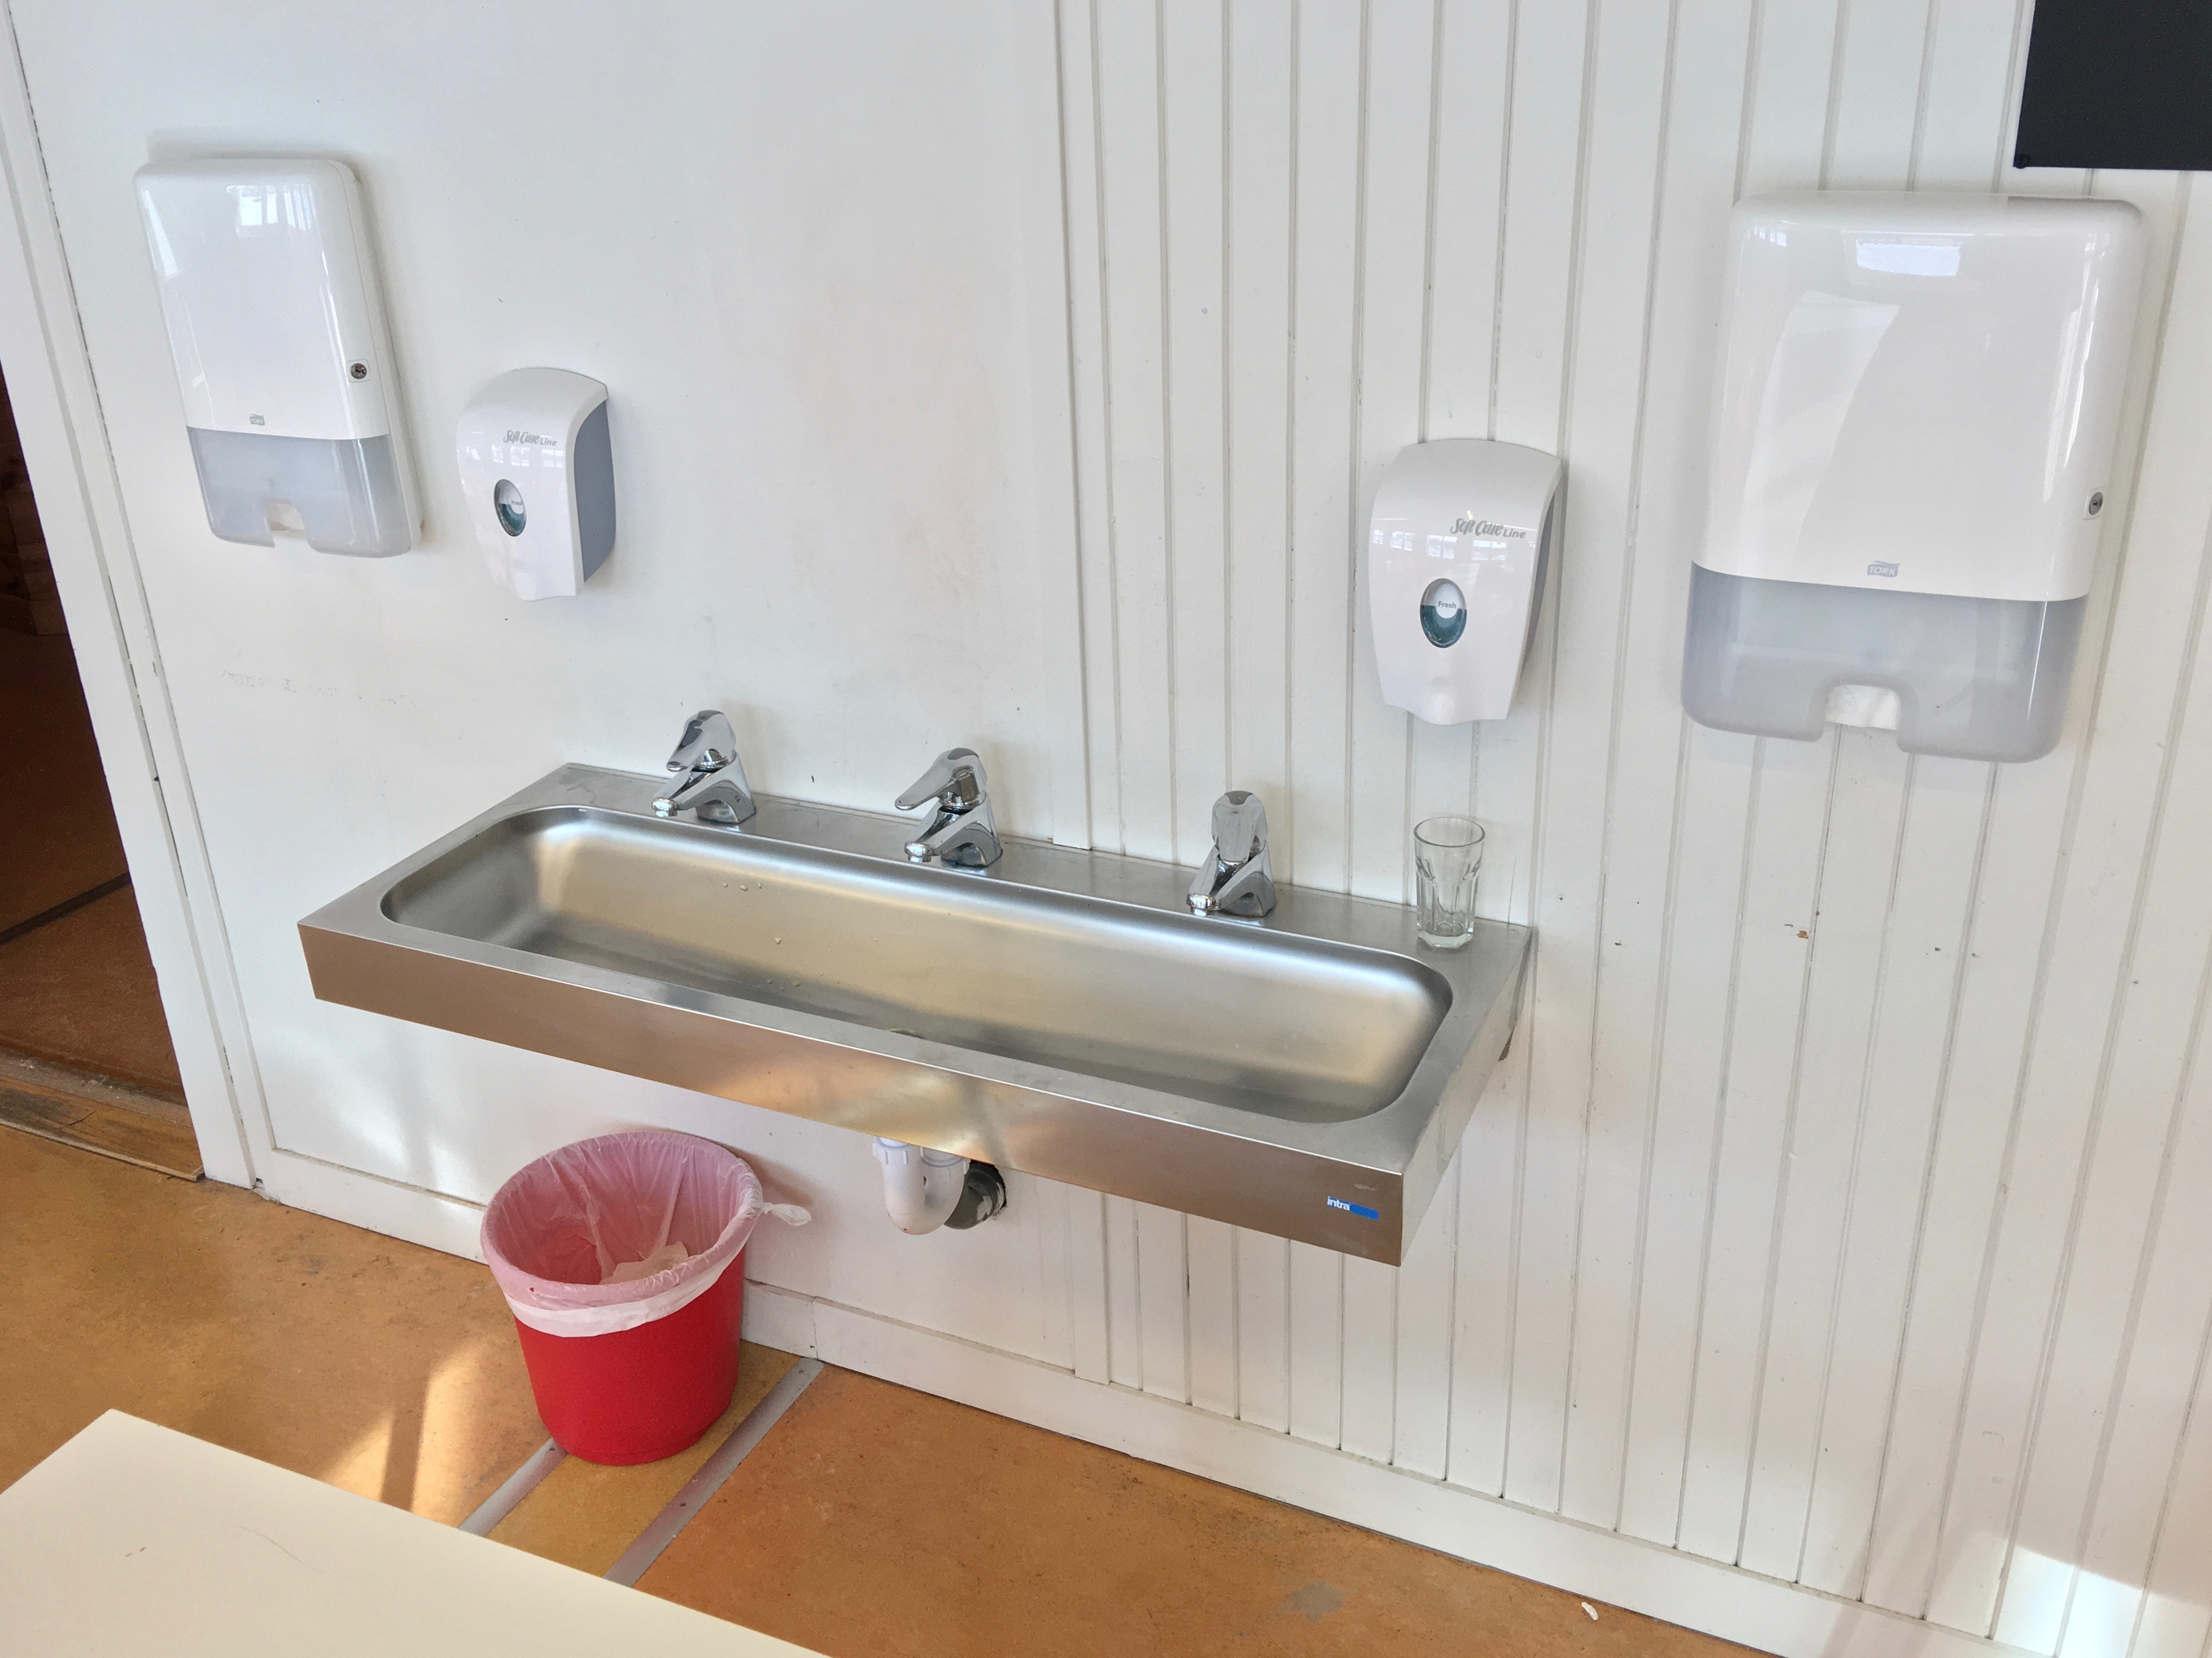 https commons wikimedia org wiki file steel hand wash basin sink with three water taps dispensers for soap and paper hand towels wipes in classroom of a primary school in fusa hordaland norway 2018 03 20 a jpg